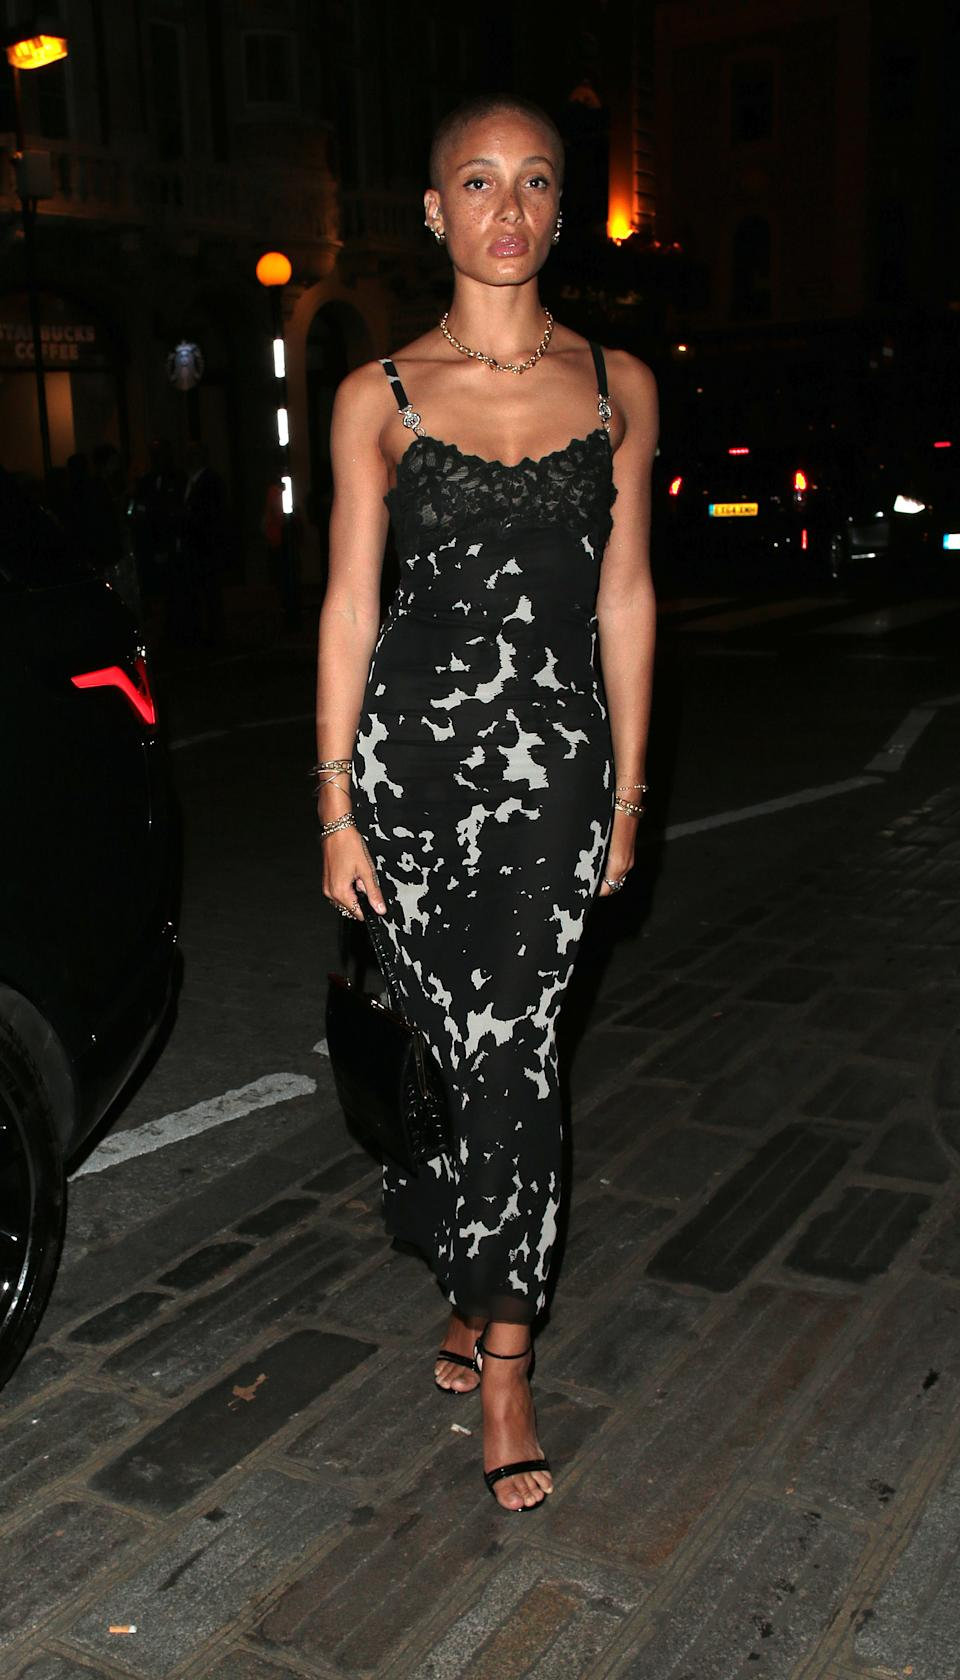 Adwoa Aboah seen attending the Fashion For Relief gala event during London Fashion Week [Photo: Getty Images]